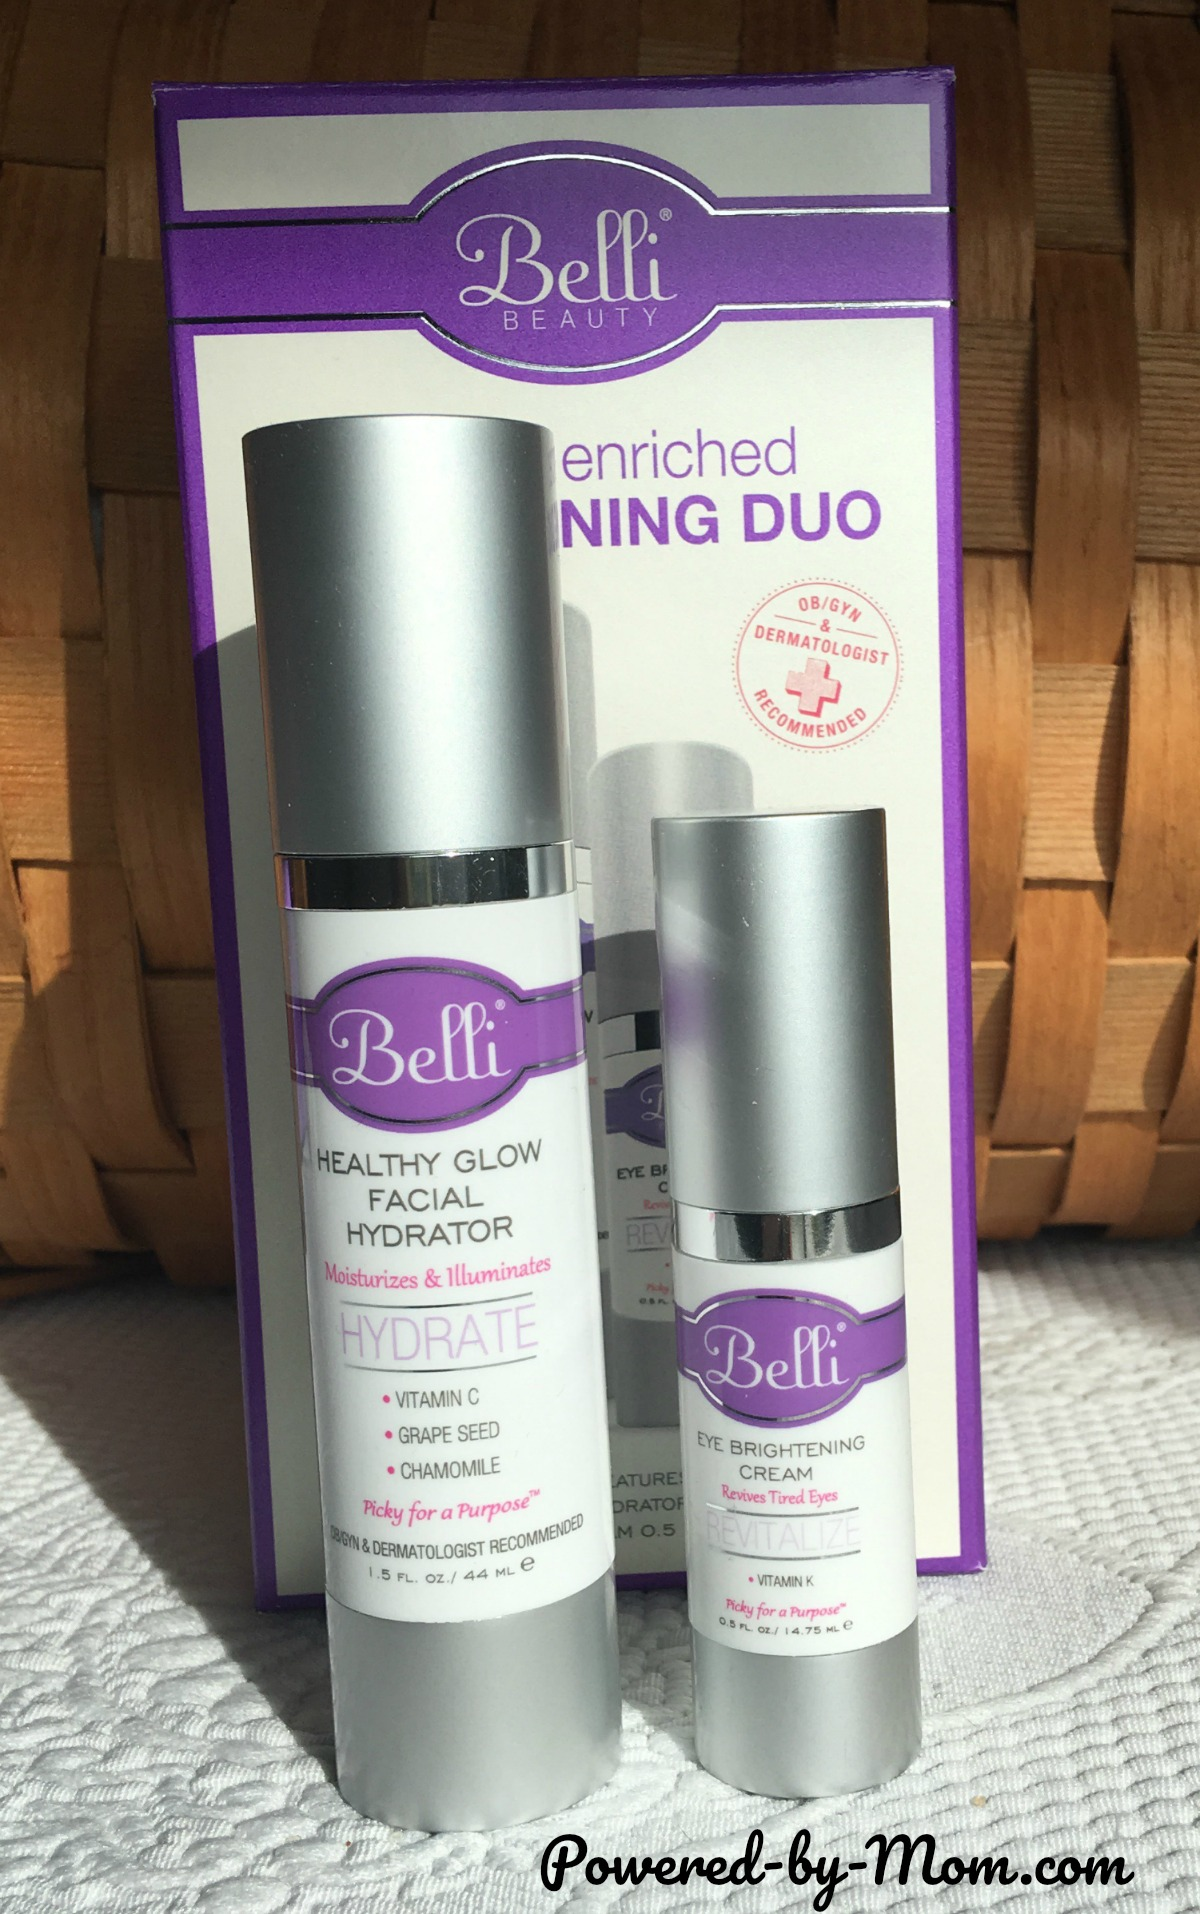 Belli Beauty Review - Powered by Mom